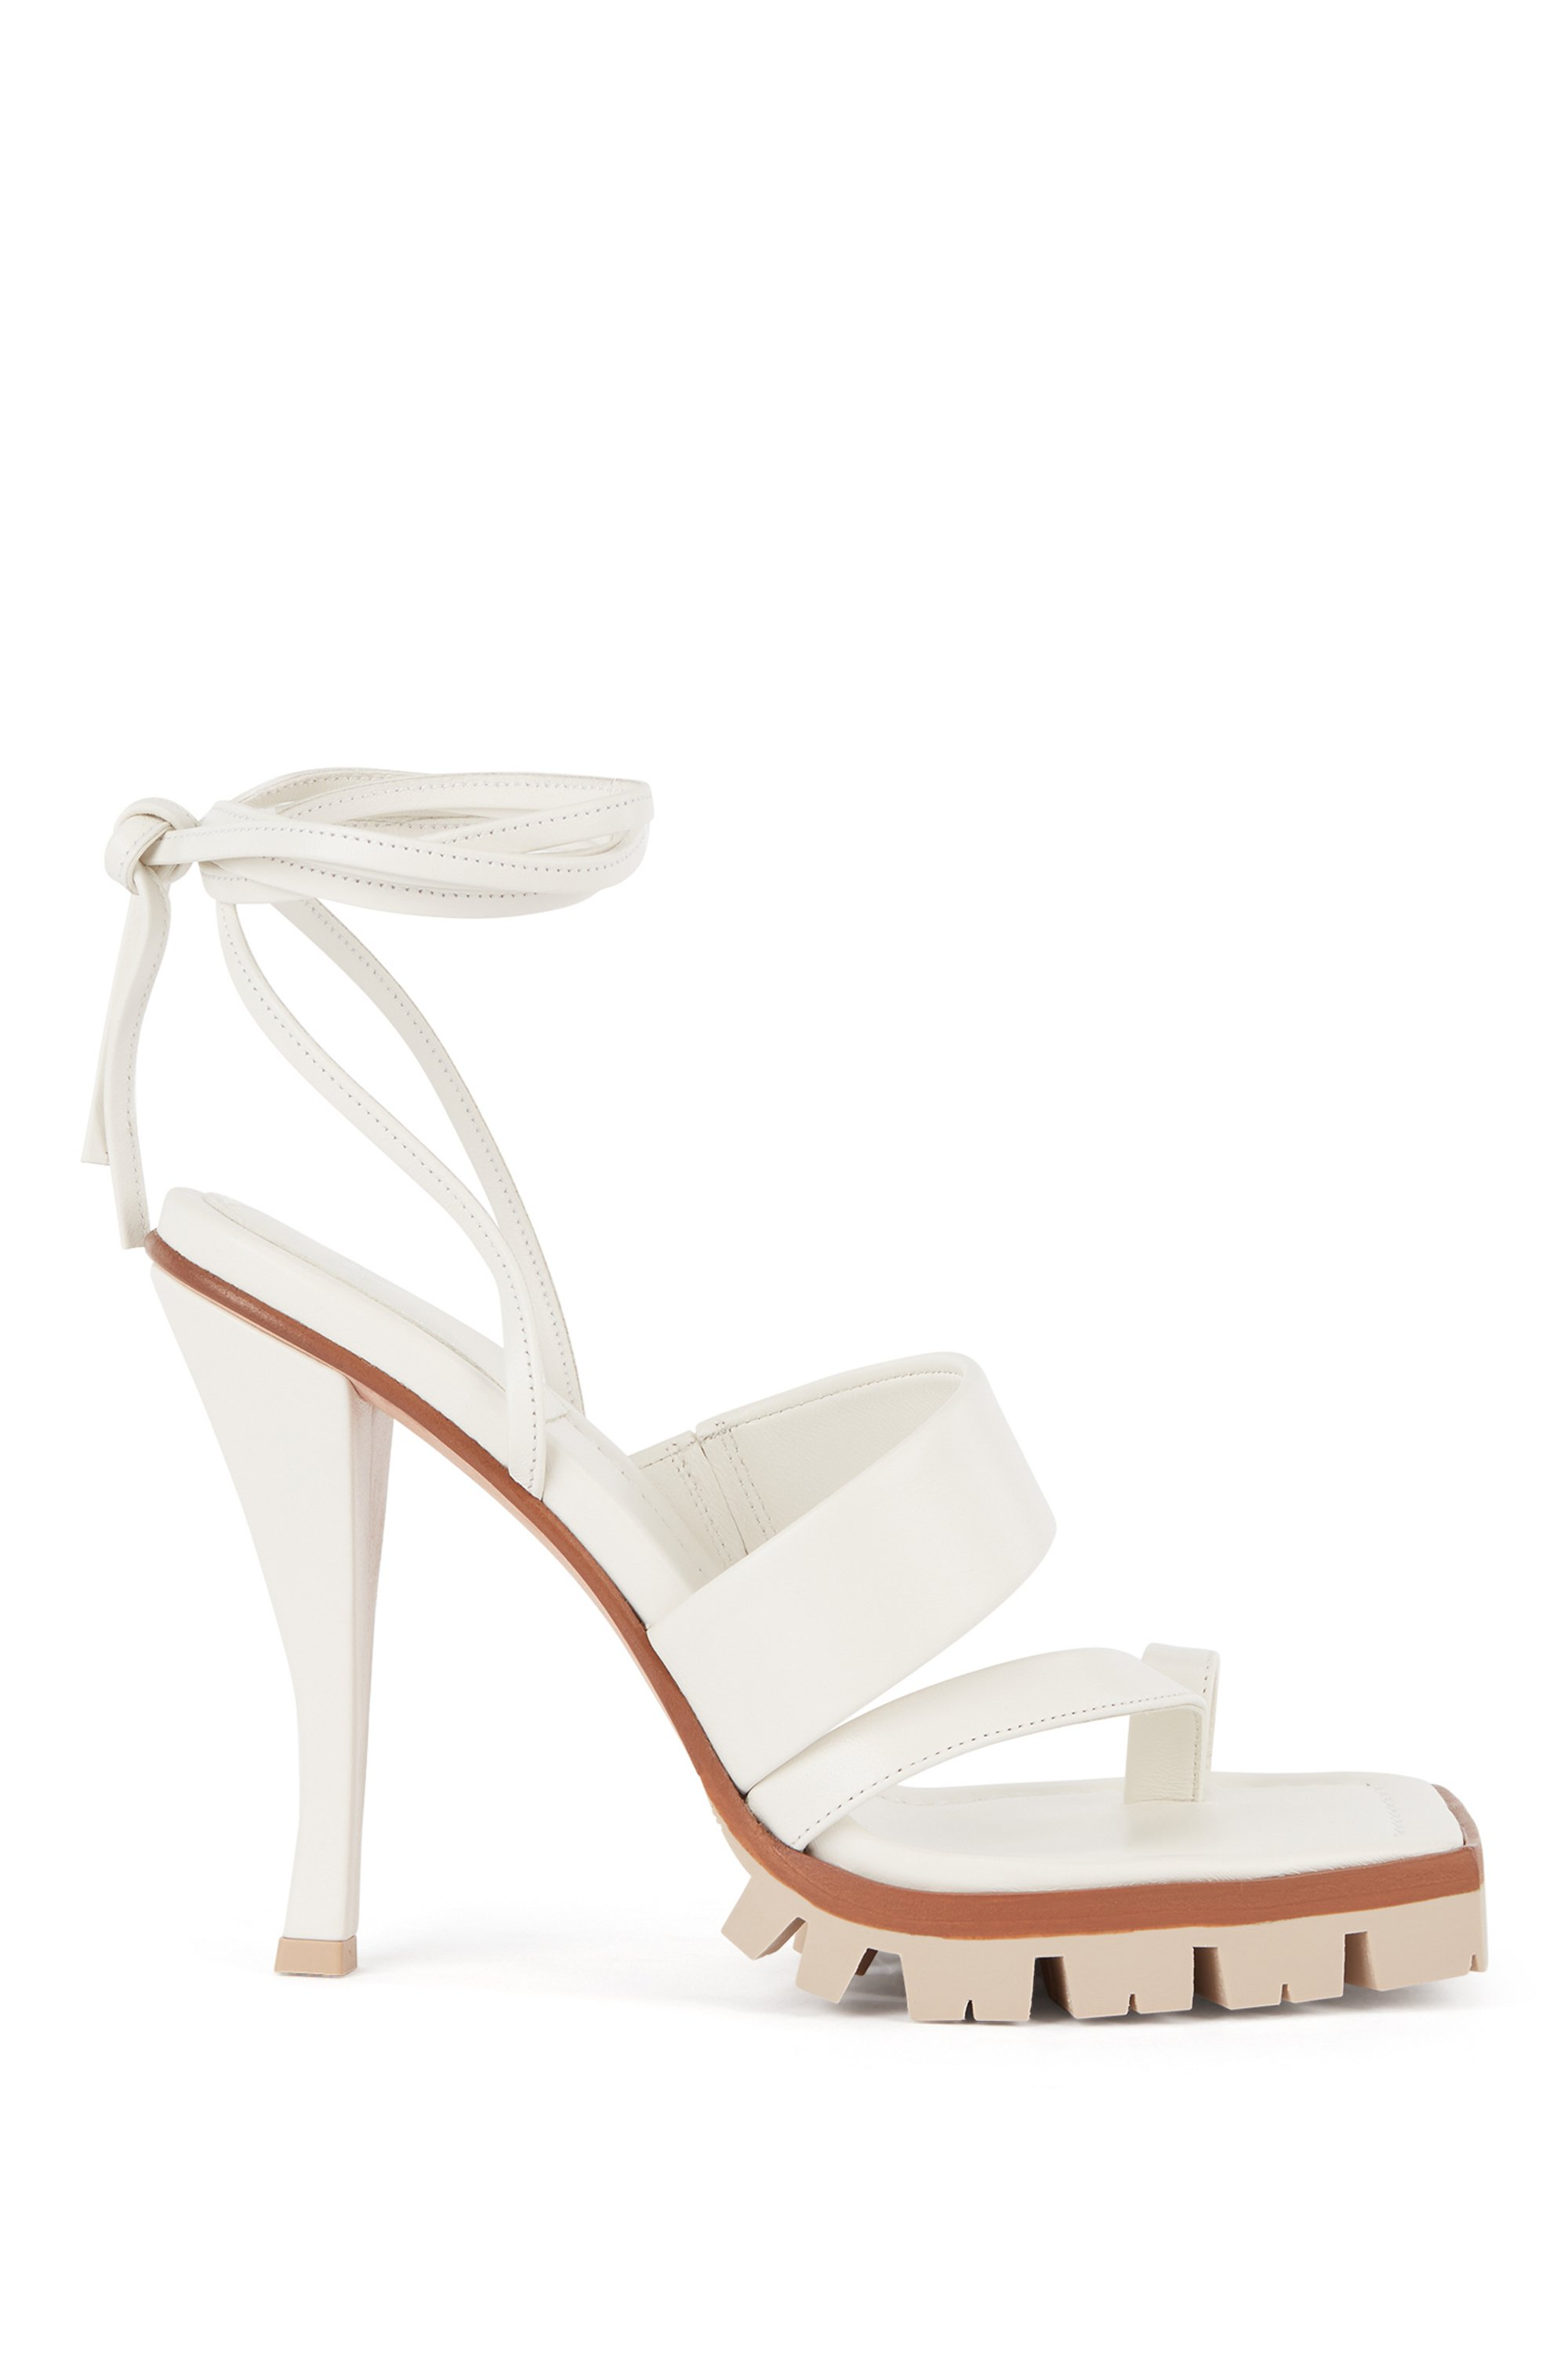 High-heeled sandals in nappa leather with ankle ties, White